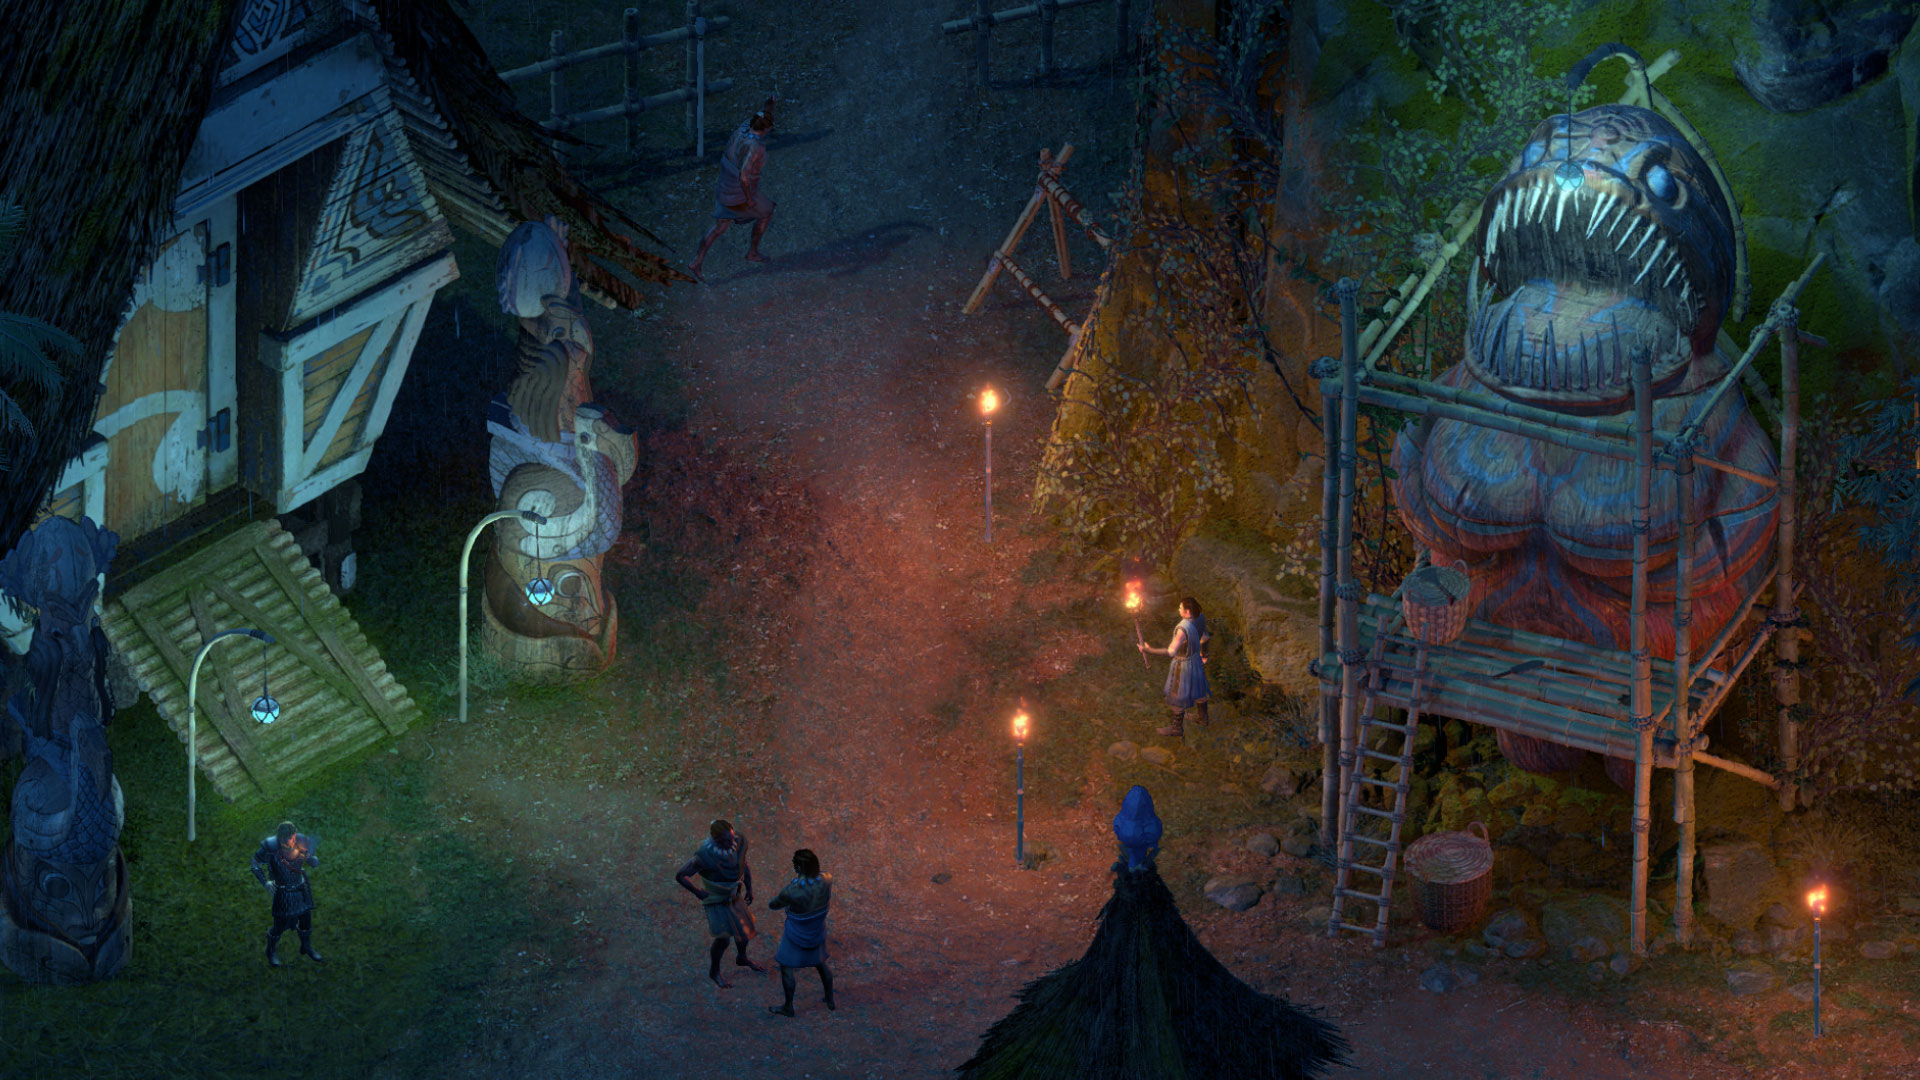 Pillars of Eternity 2: Deadfire environments